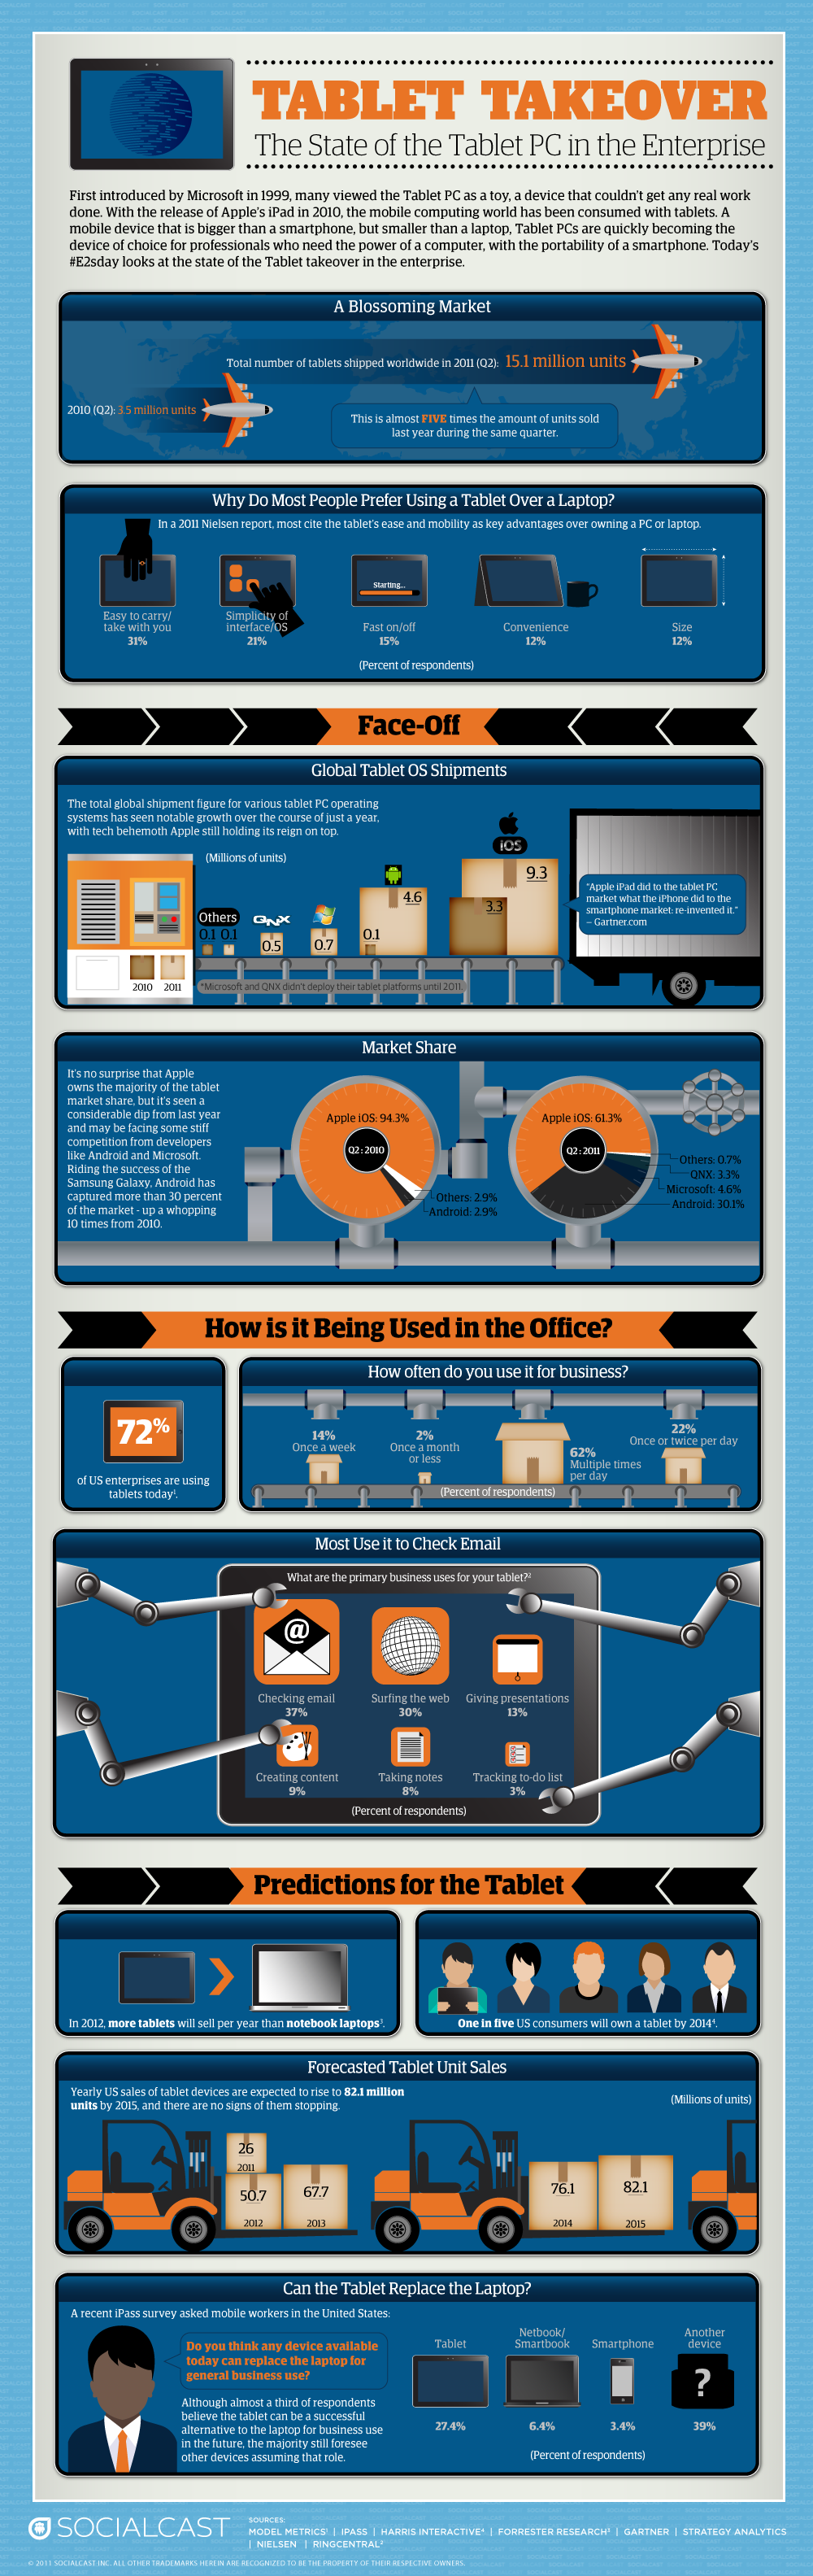 Will the Tablet Replace the Laptop? [Infographic]